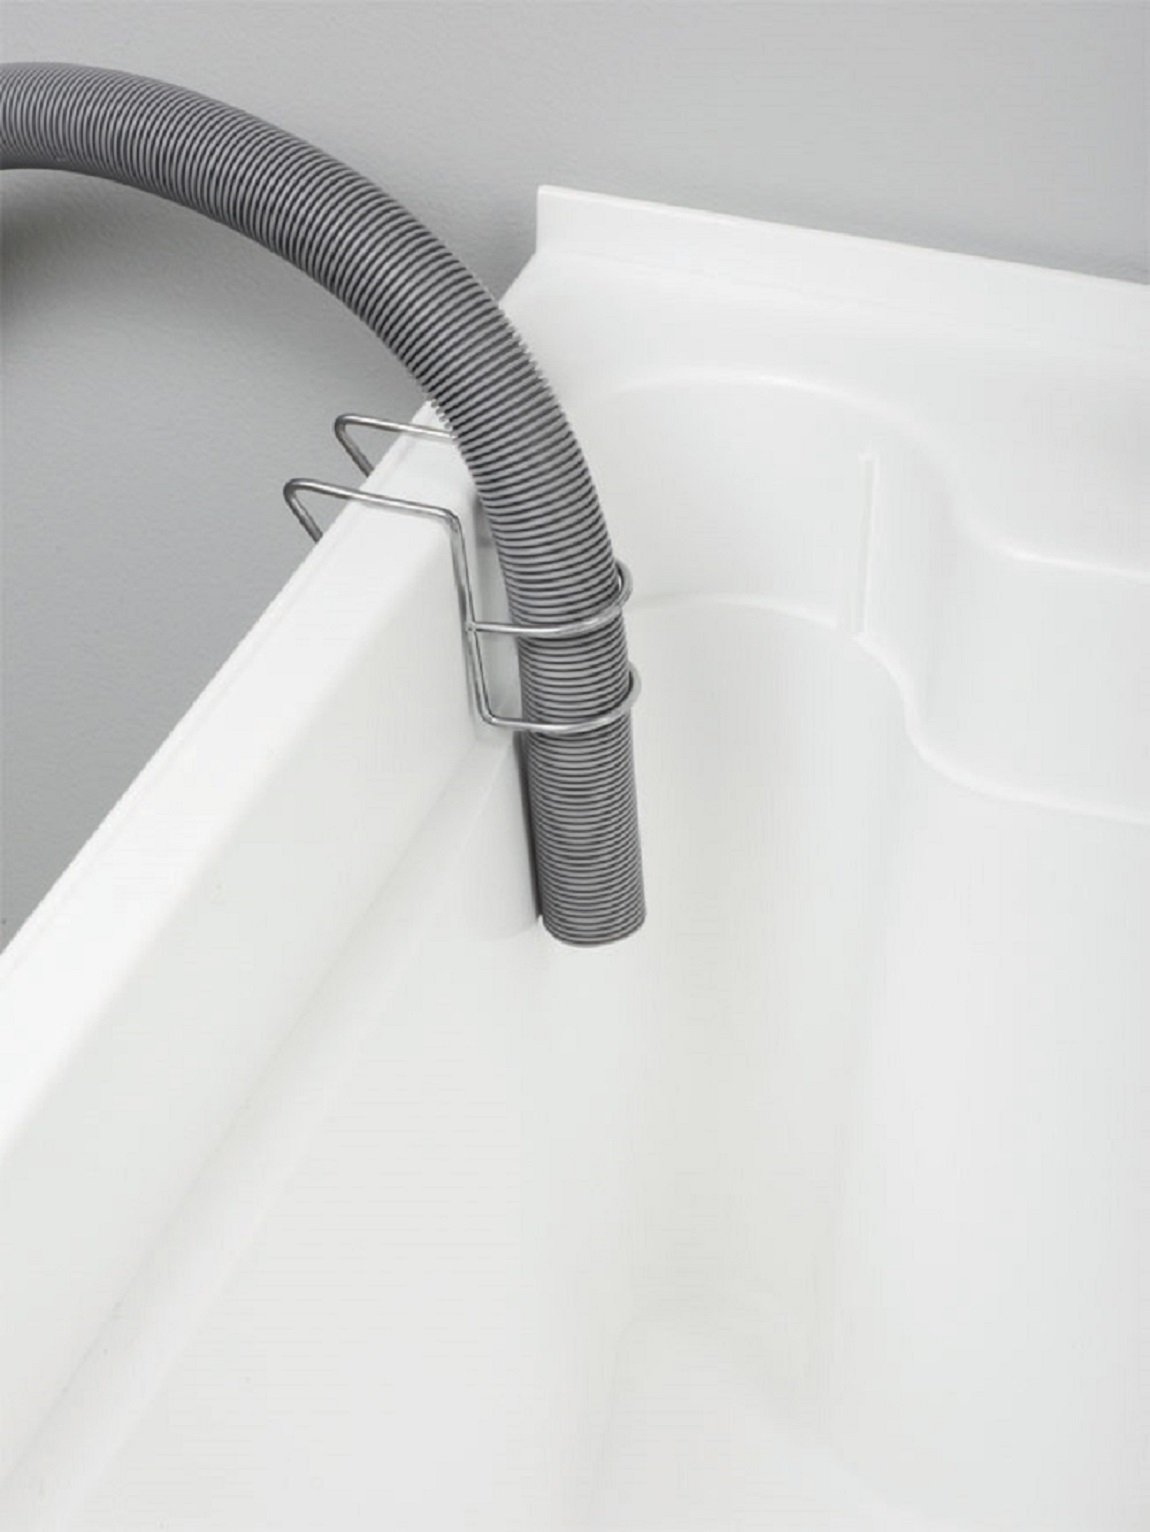 ZENITH LT310PCCS WASHING MACHINE DRAIN HOSE HOLDER FOR LAUNDRY AND UTILITY SINKS- LT310PC